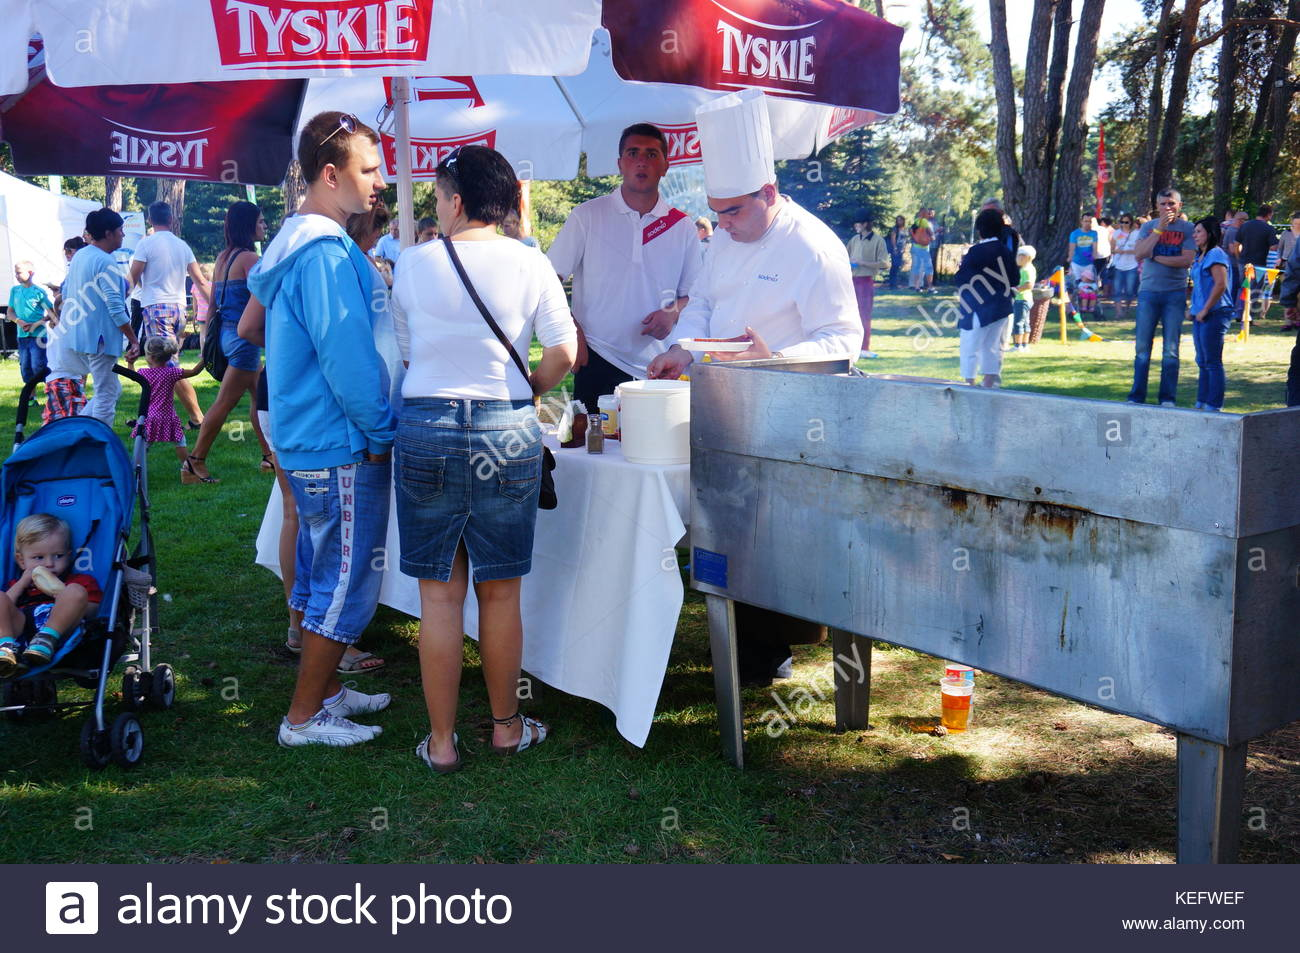 POZNAN, POLAND - SEPTEMBER 07, 2013: People by a barbeque stand at a Unilever employee event - Stock Image